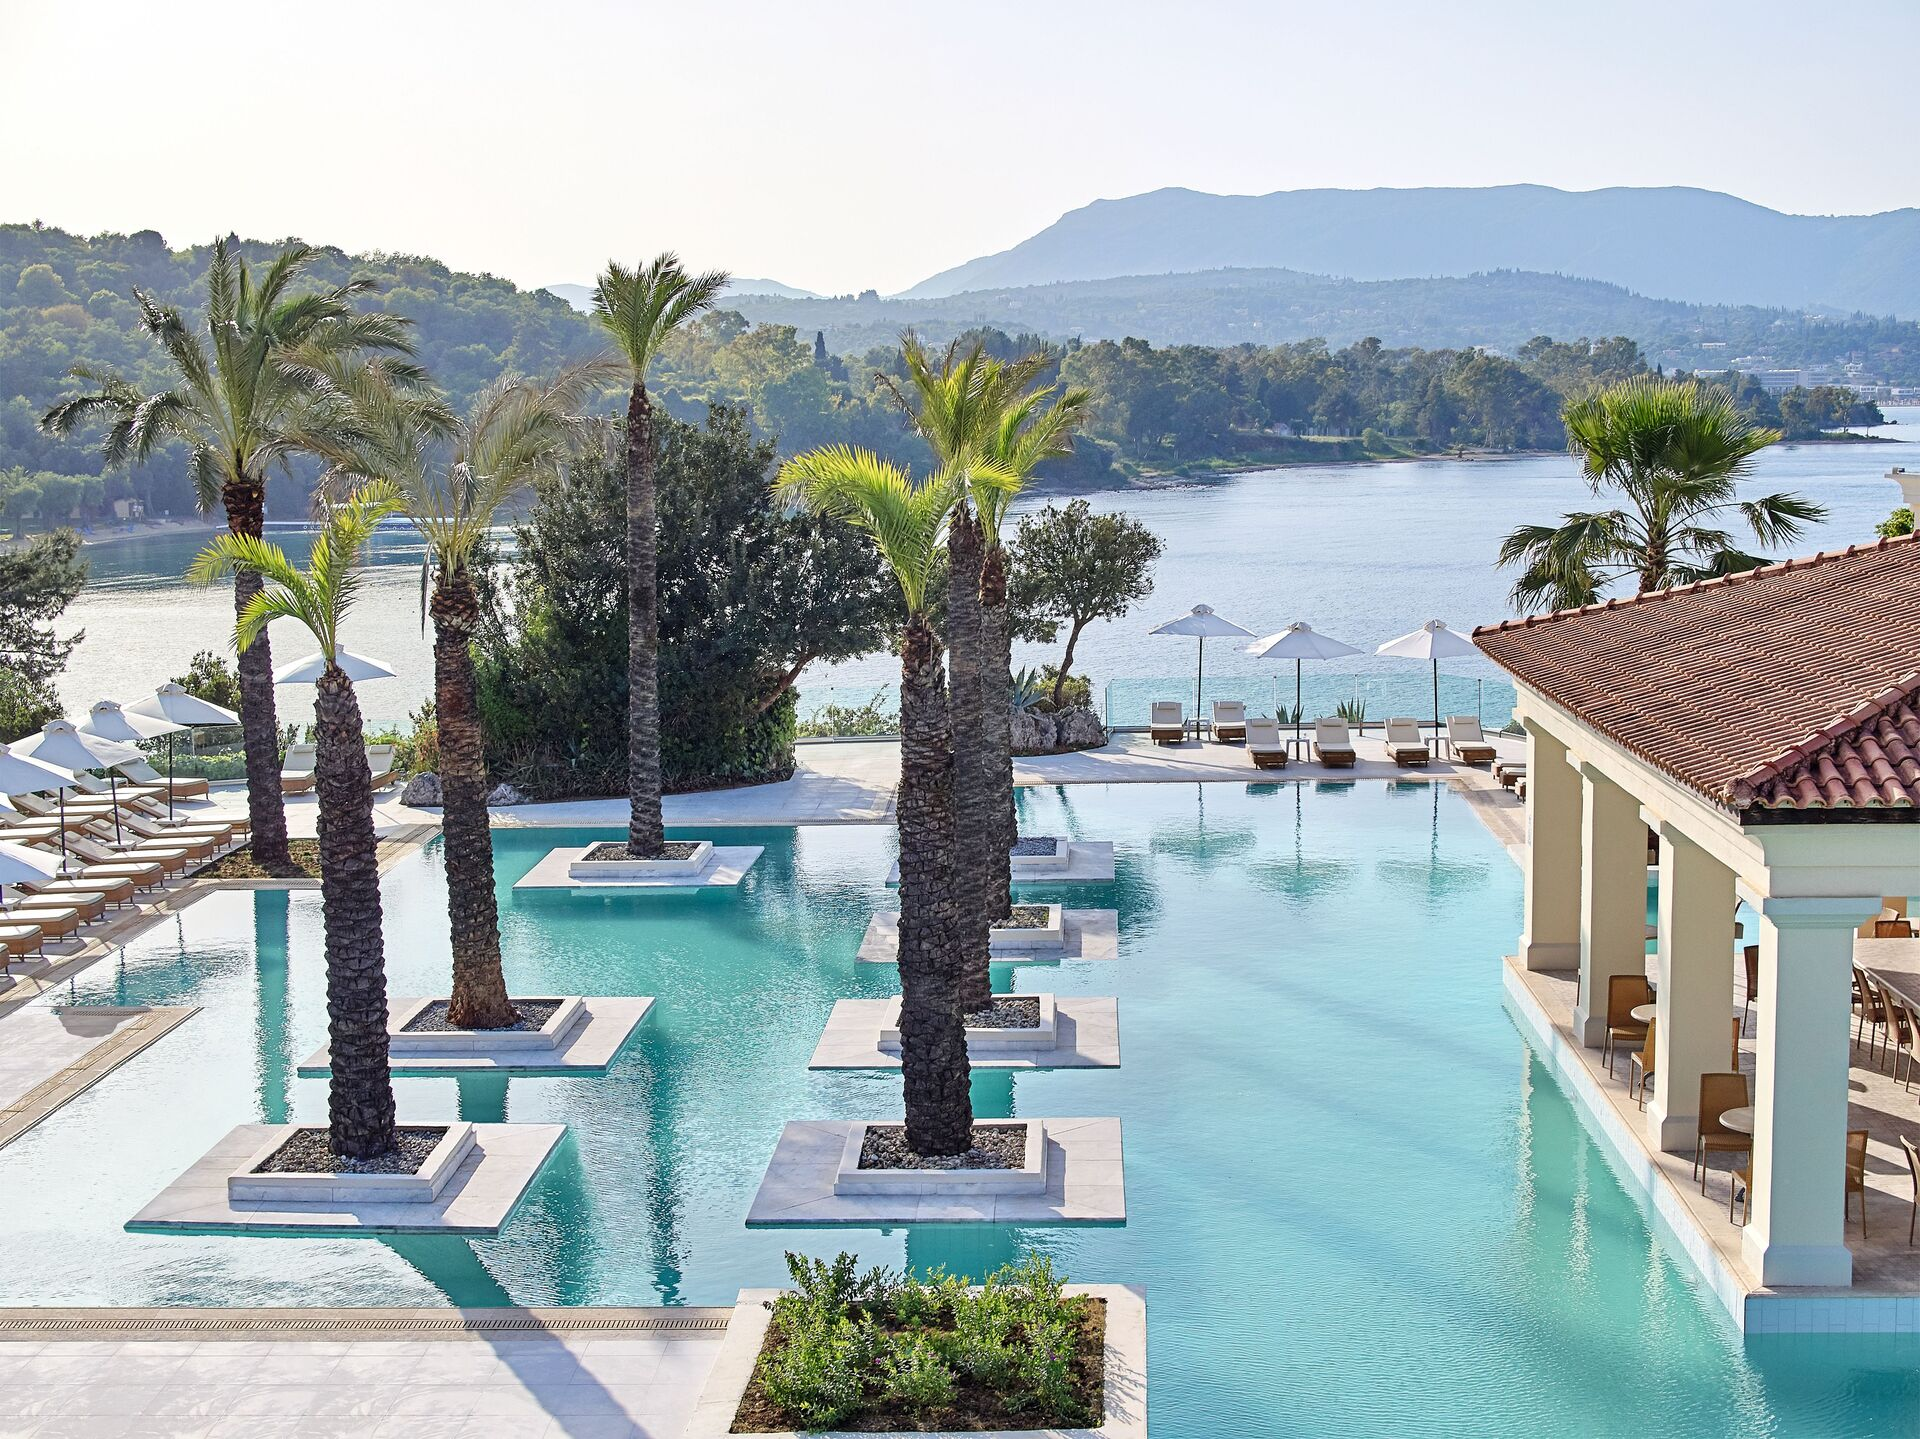 https://cms.satur.sk/data/imgs/tour_image/orig/03-impressive-pool-complex-dotted-with-palm-trees_72dpi-1946645.jpg